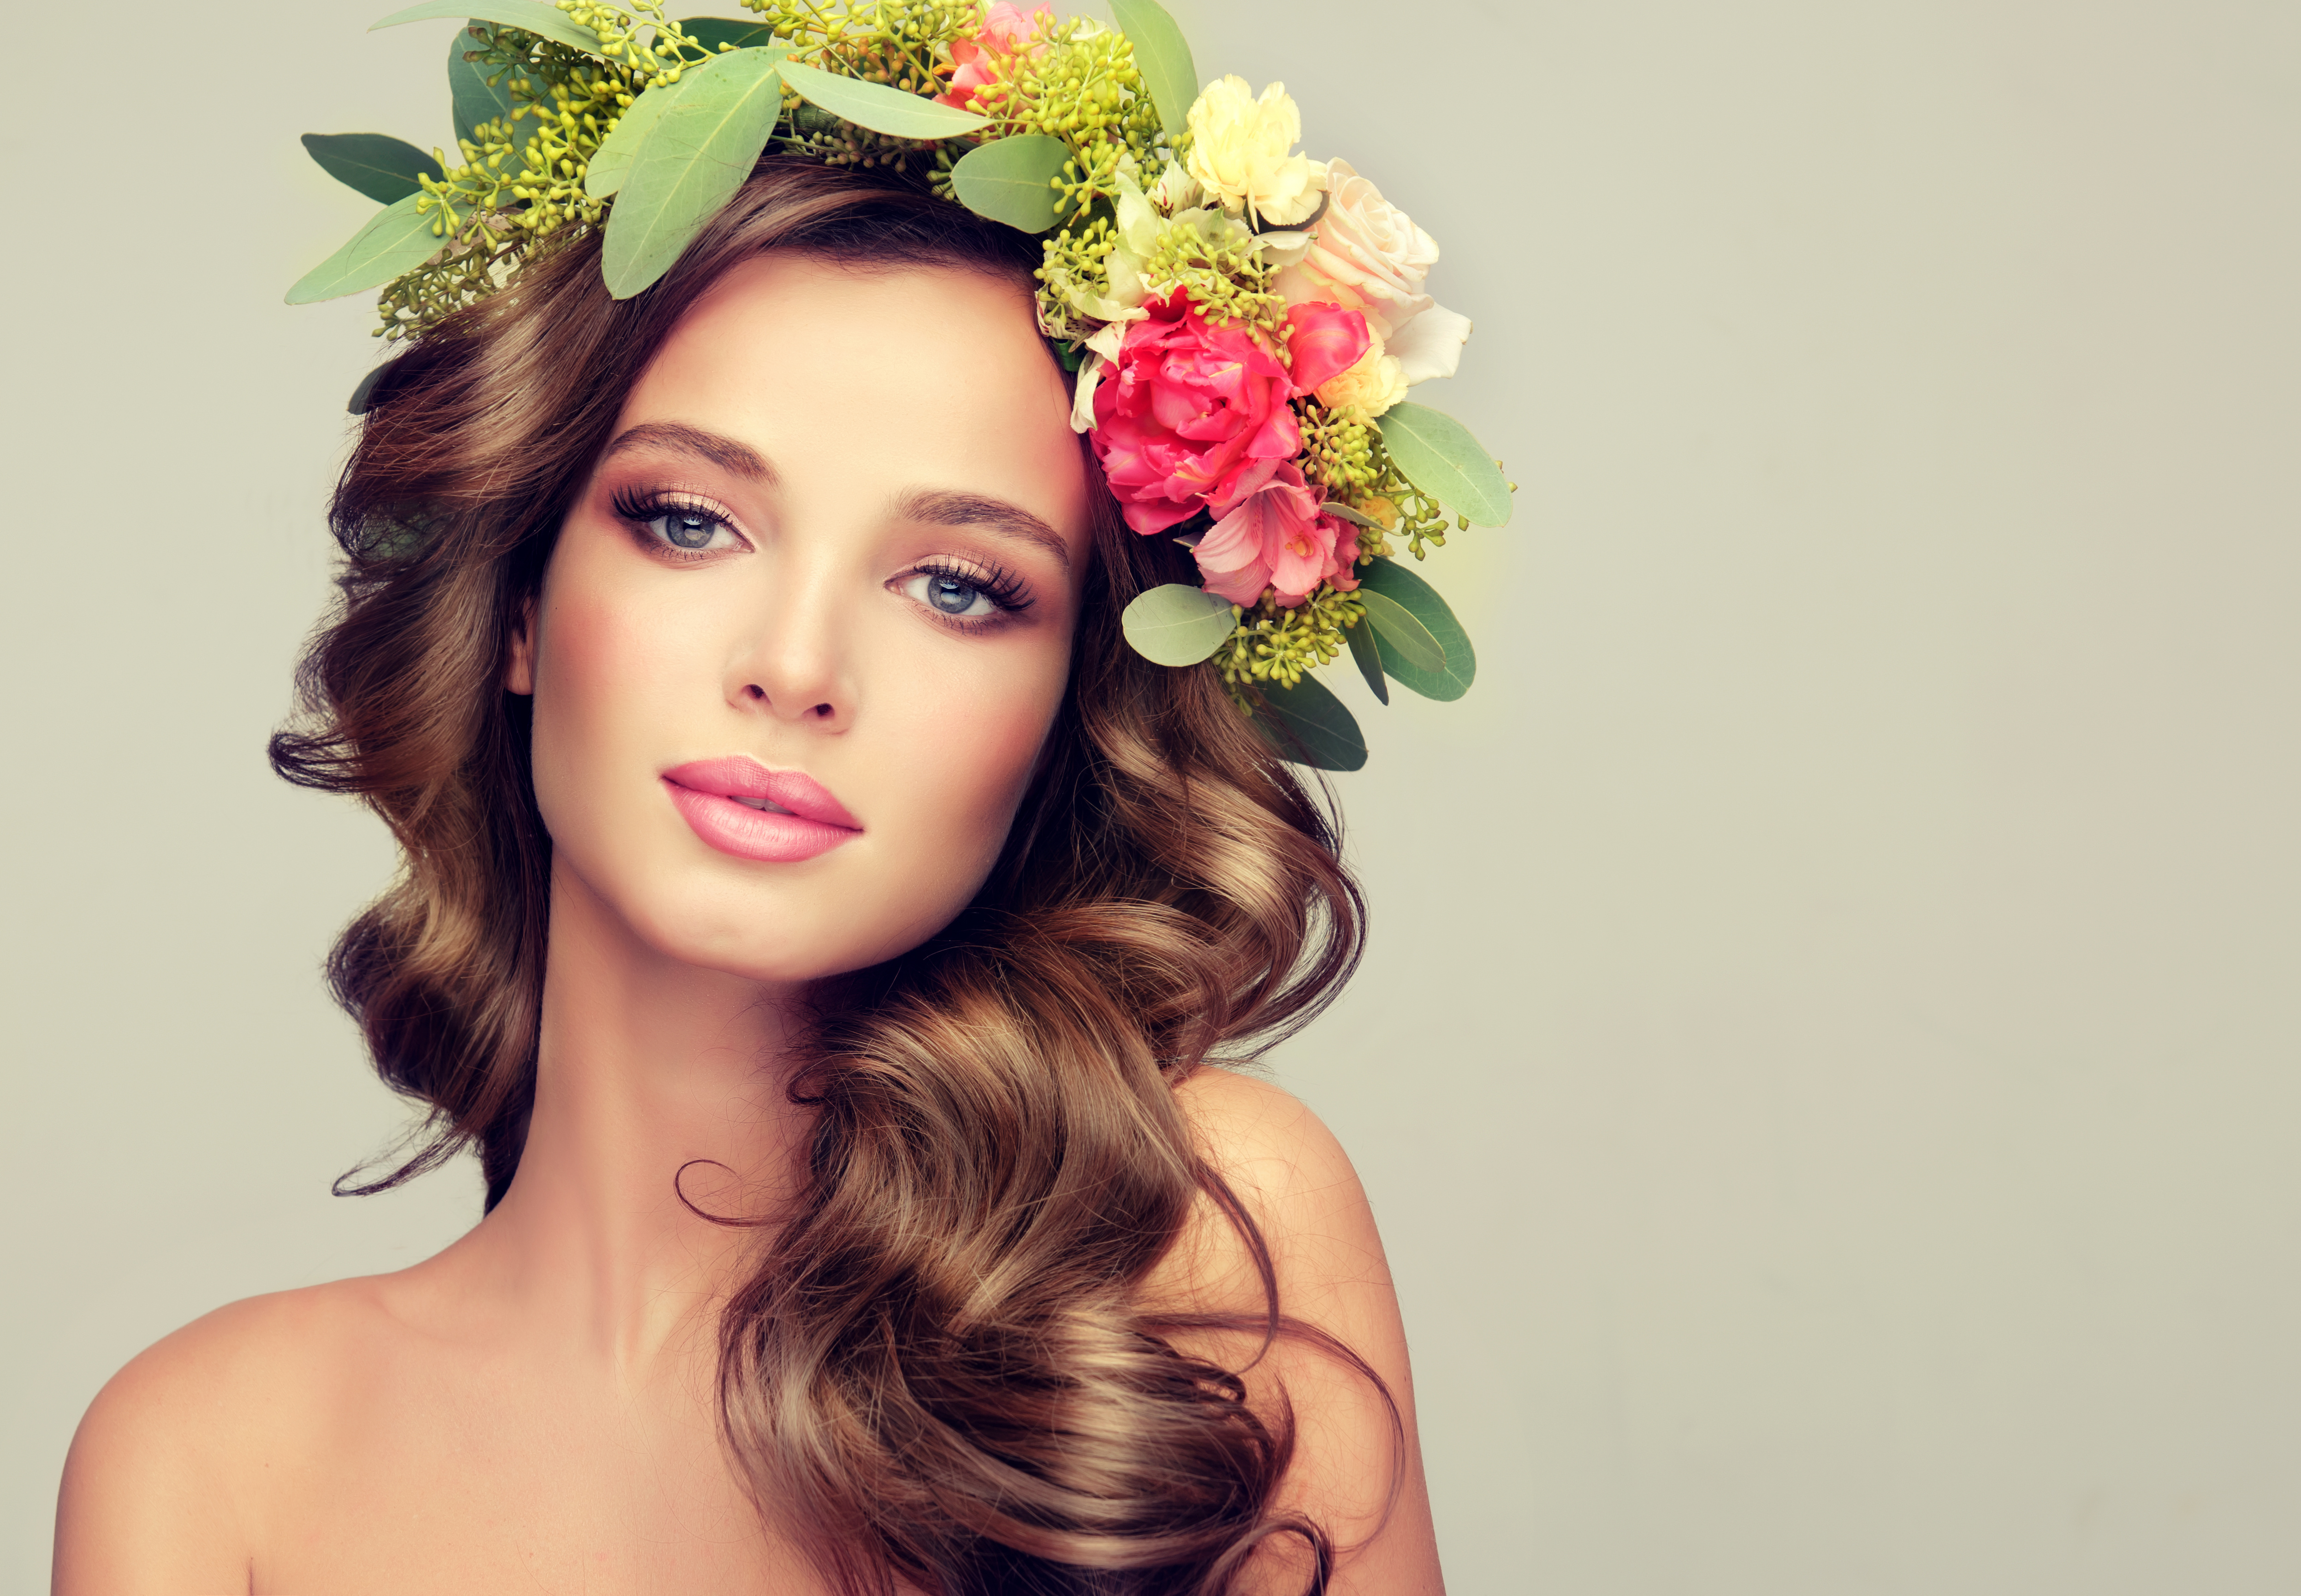 Beautiful Woman Model Brunette With Long Curly Hair Floral